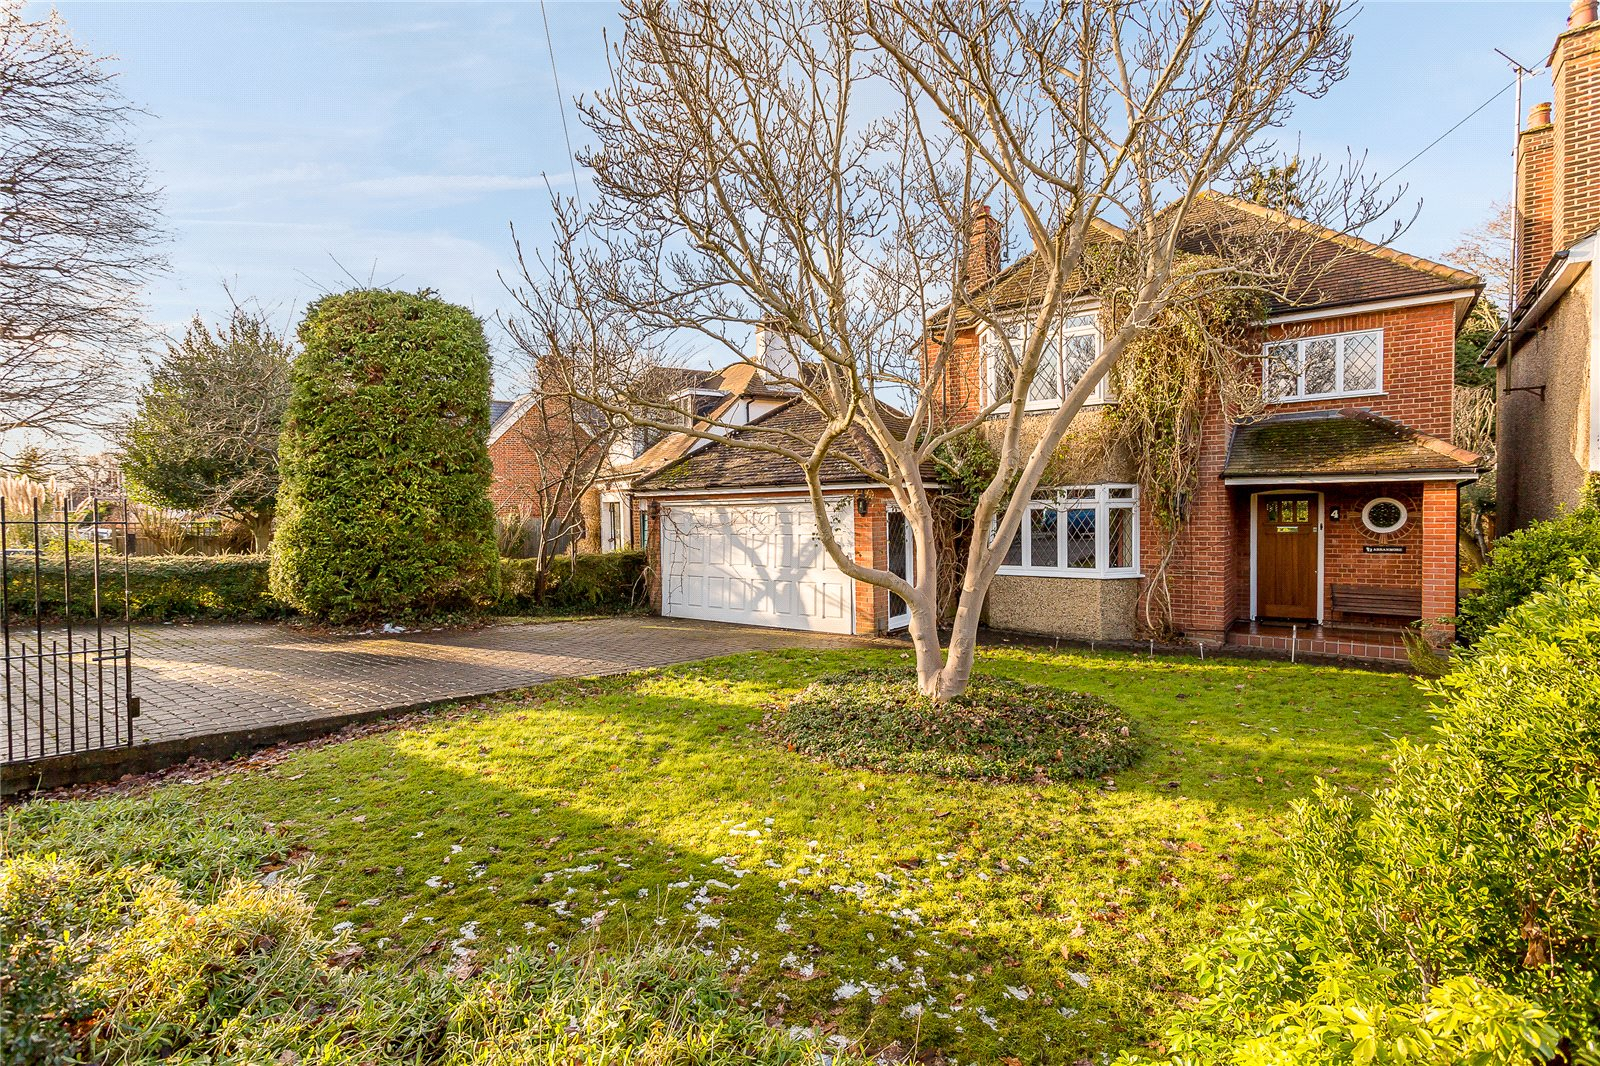 Single Family Home for Sale at Mile House Lane, St. Albans, Hertfordshire, AL1 St Albans, England